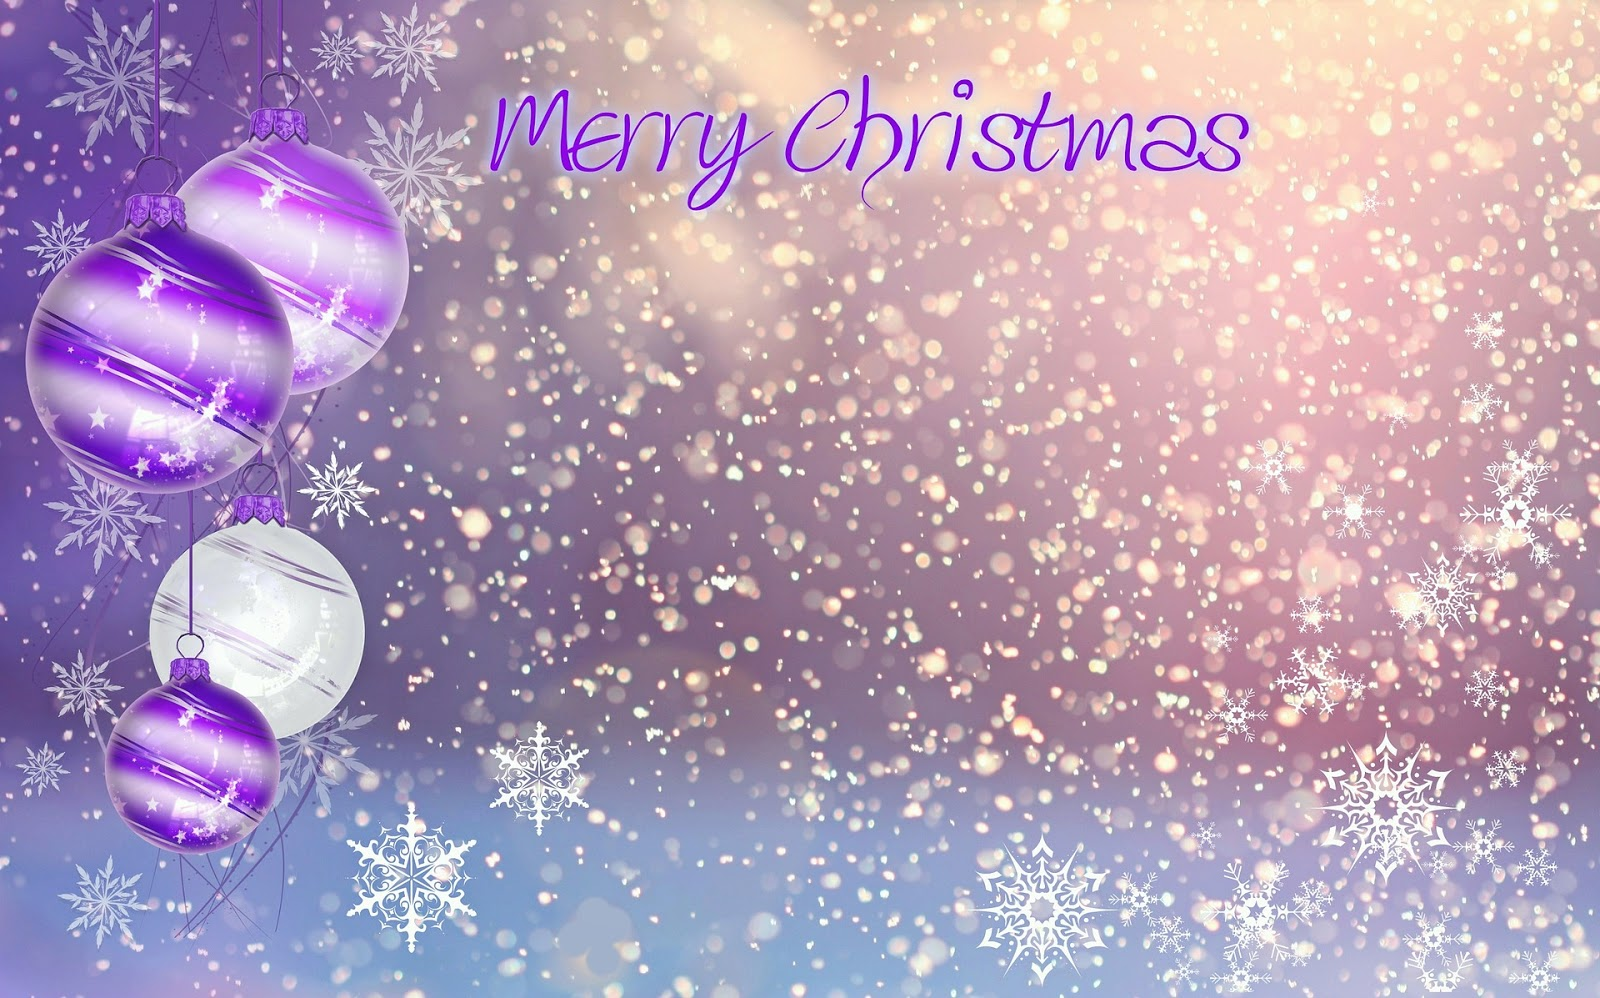 Merry Christmas 2017 HD Photos Free Download